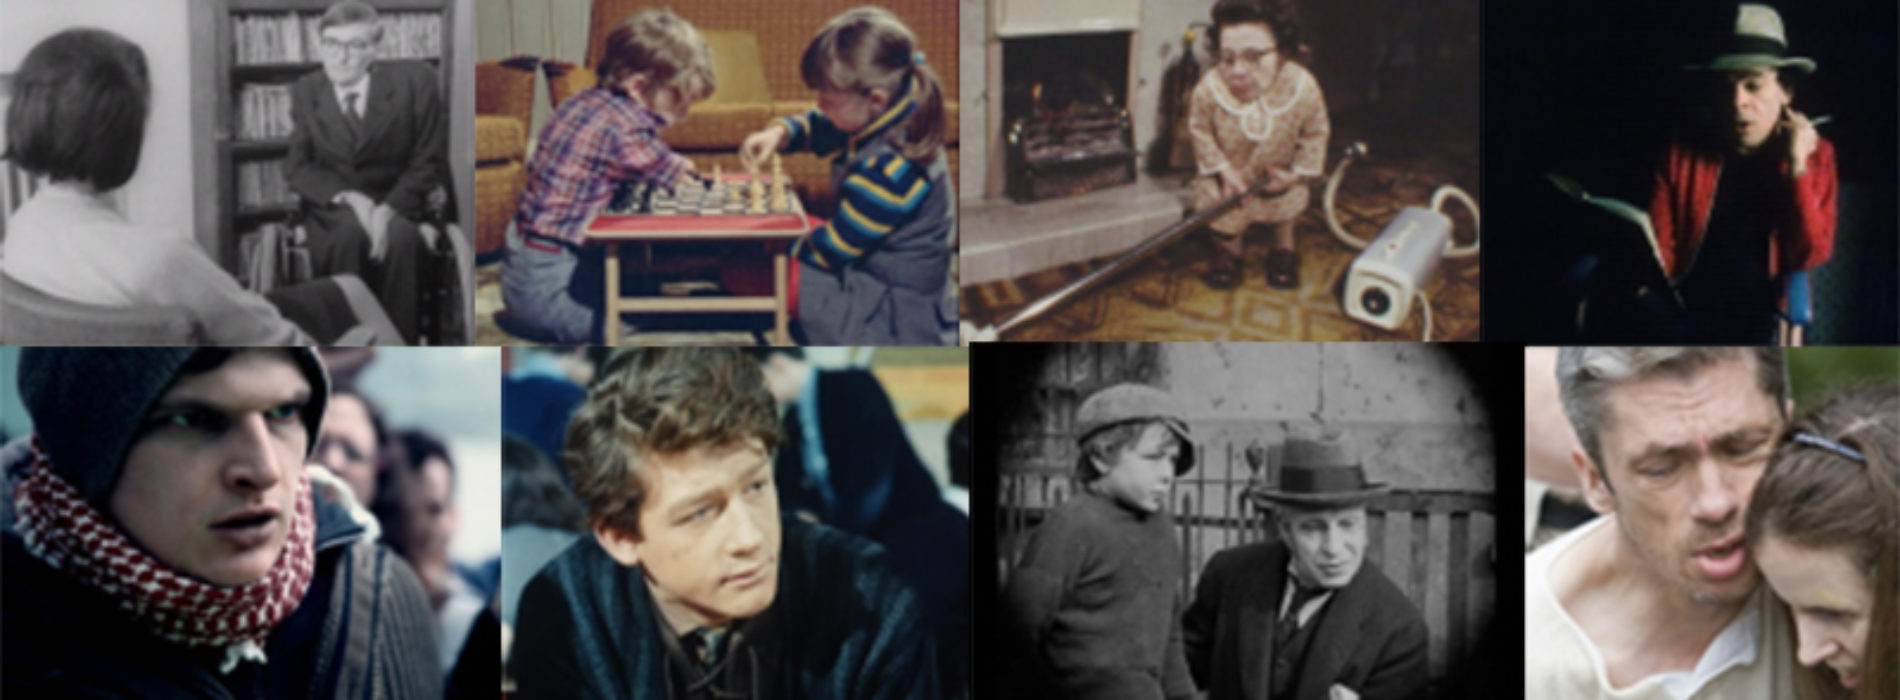 BFI presents a history of 'Disabled Britain on Film' from 1911 to the present day